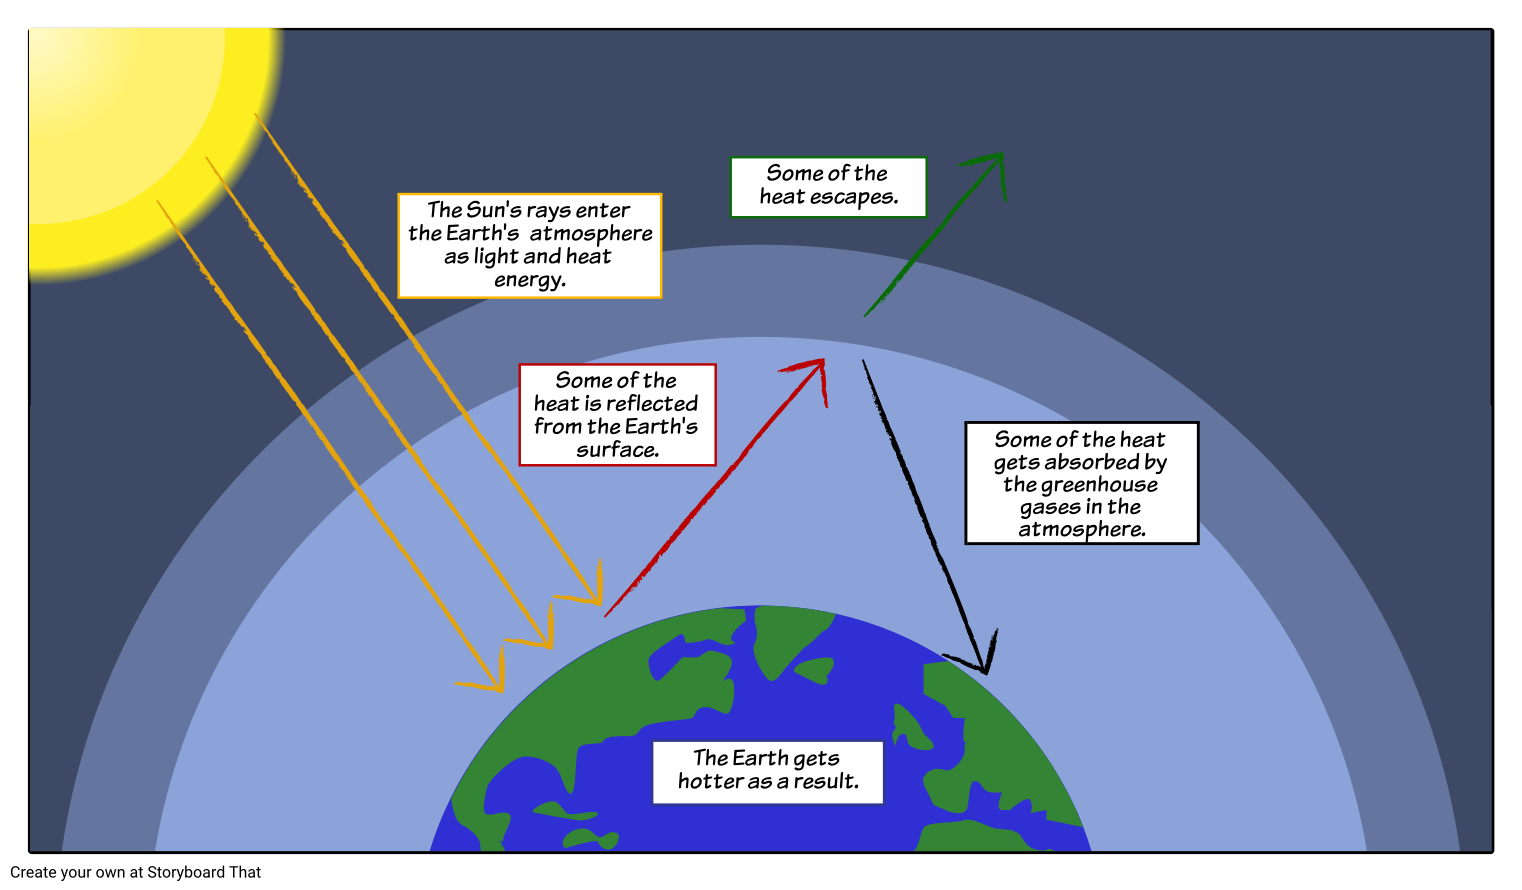 hight resolution of global warming the greenhouse effect model storyboard that is a great way for students to combine images and text in a creative way to produce quick and